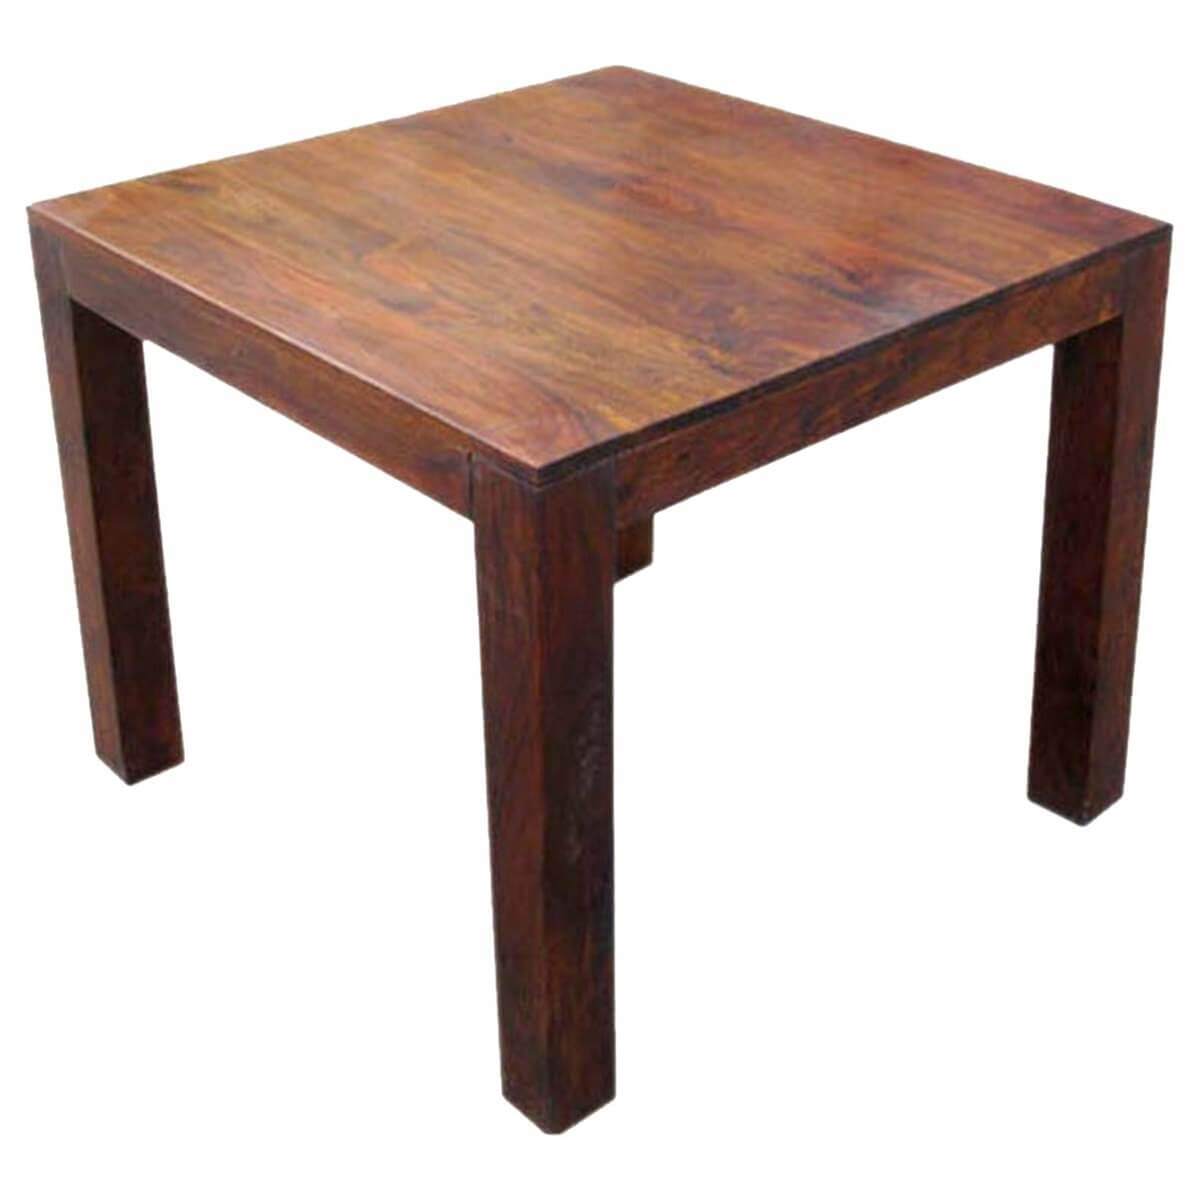 Solid Wood Kitchen Tables: Kluane Contemporary Solid Wood Square Dinette Dining Table